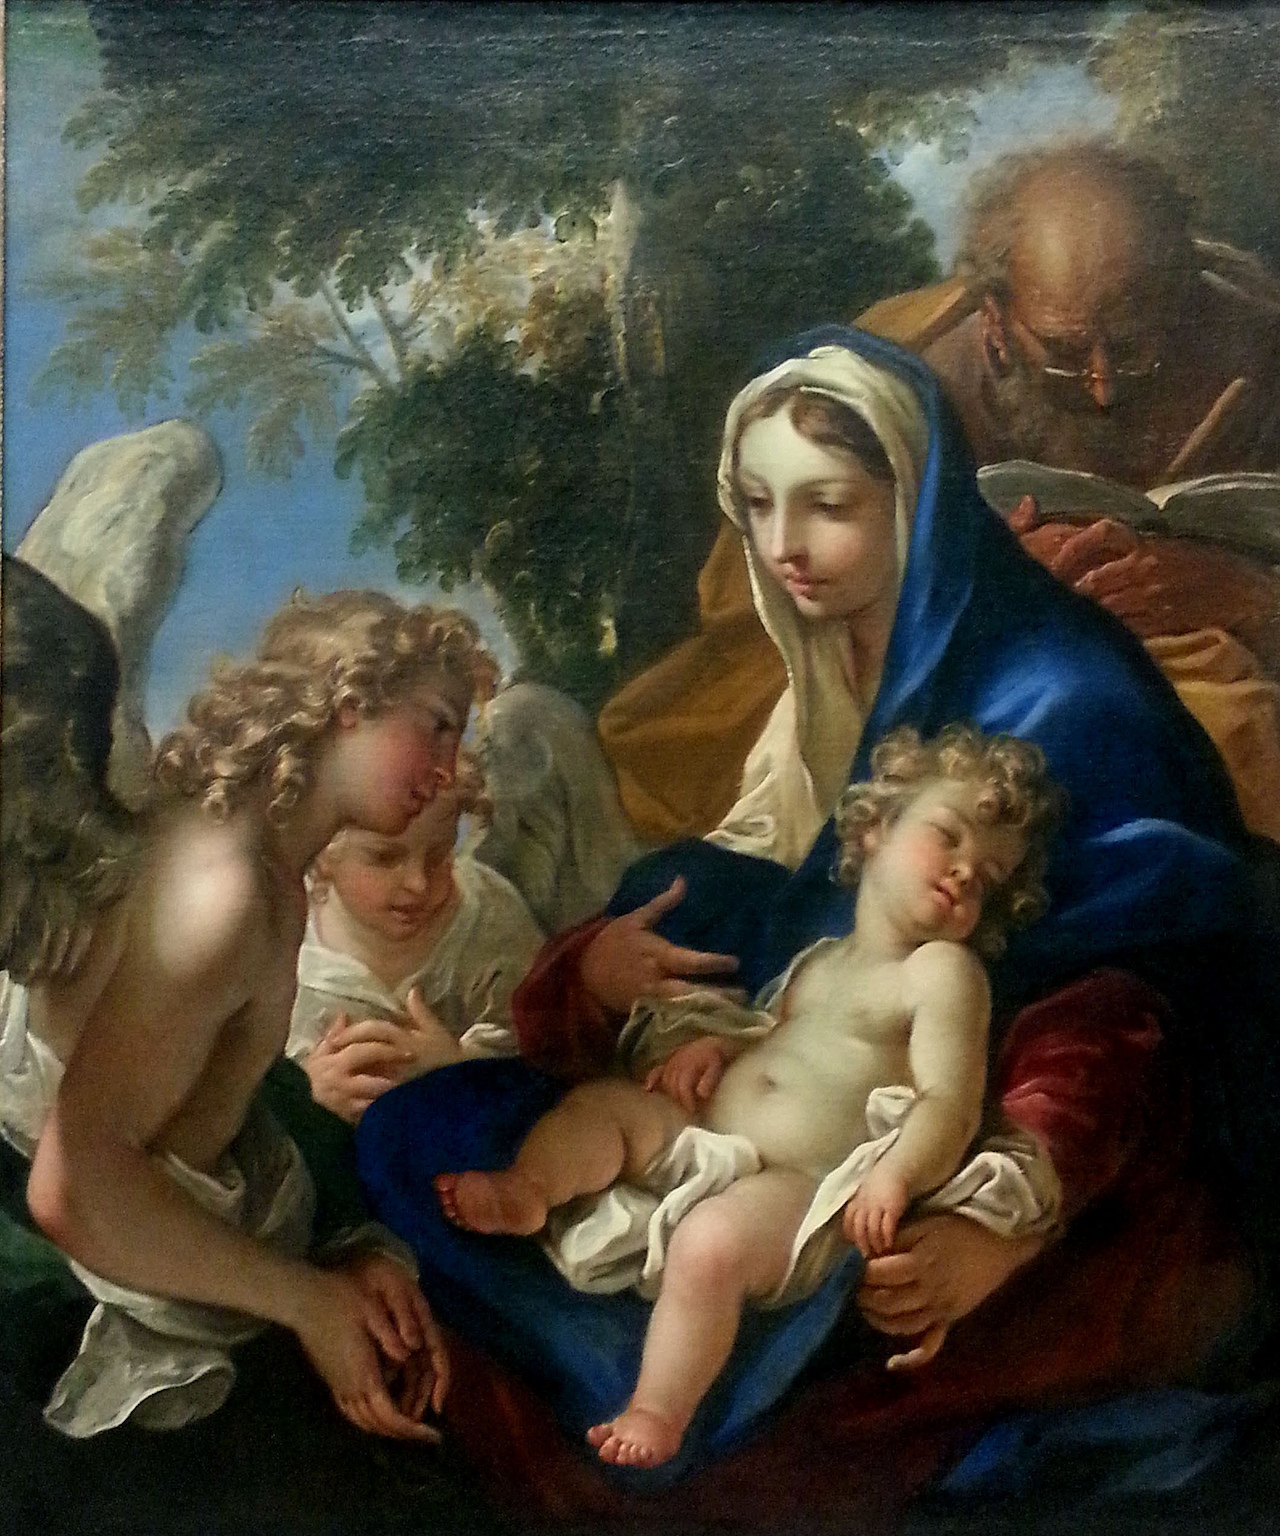 """Sebastiano Ricci, """"The Holy Family with Angels"""" (1700) (photo by Jorge Elías via Flickr, licensed under CC BY 2.0) (click to enlarge)"""